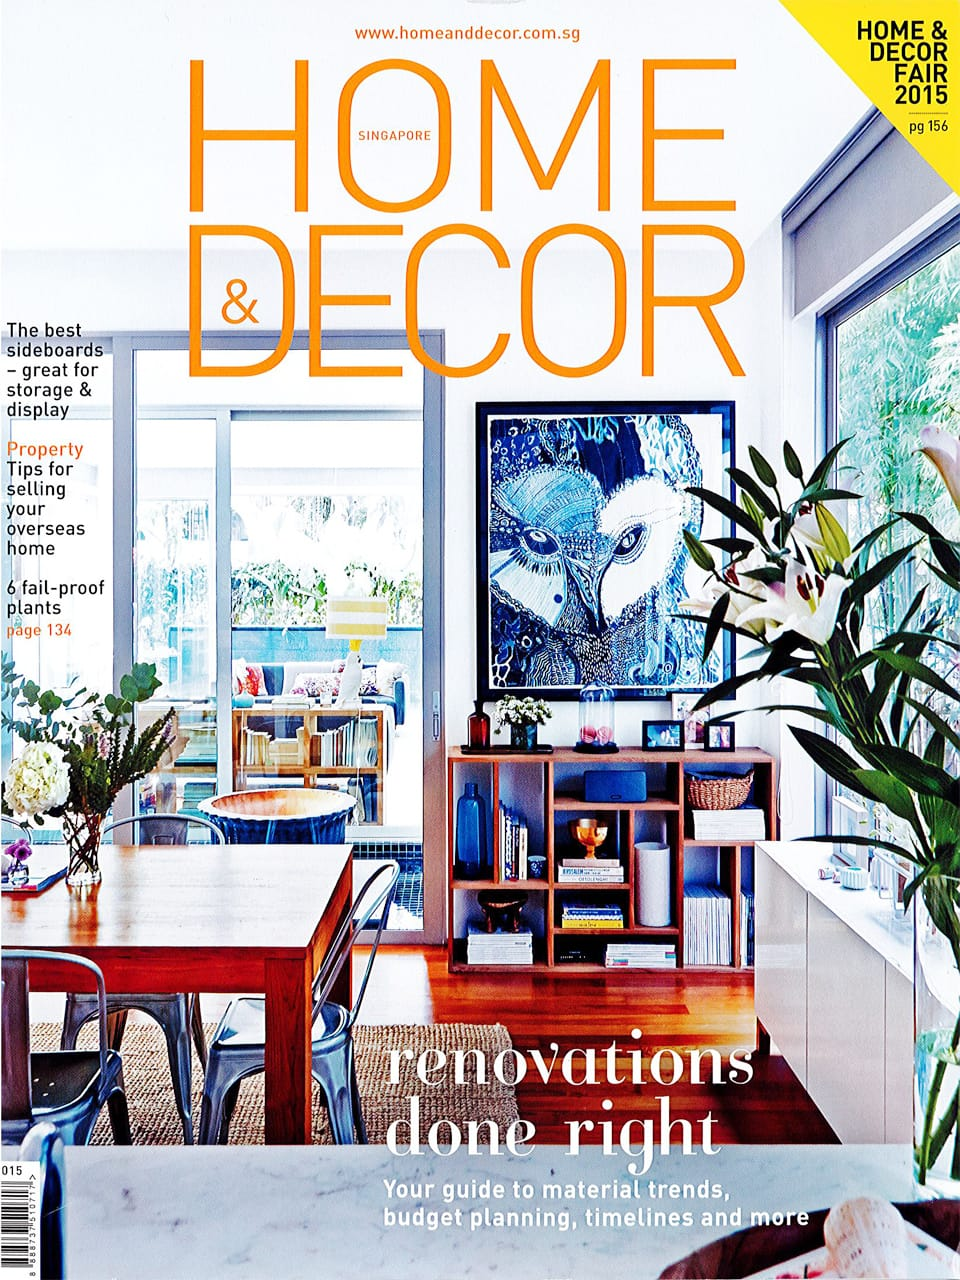 Home & Decor - September 2015 Issue